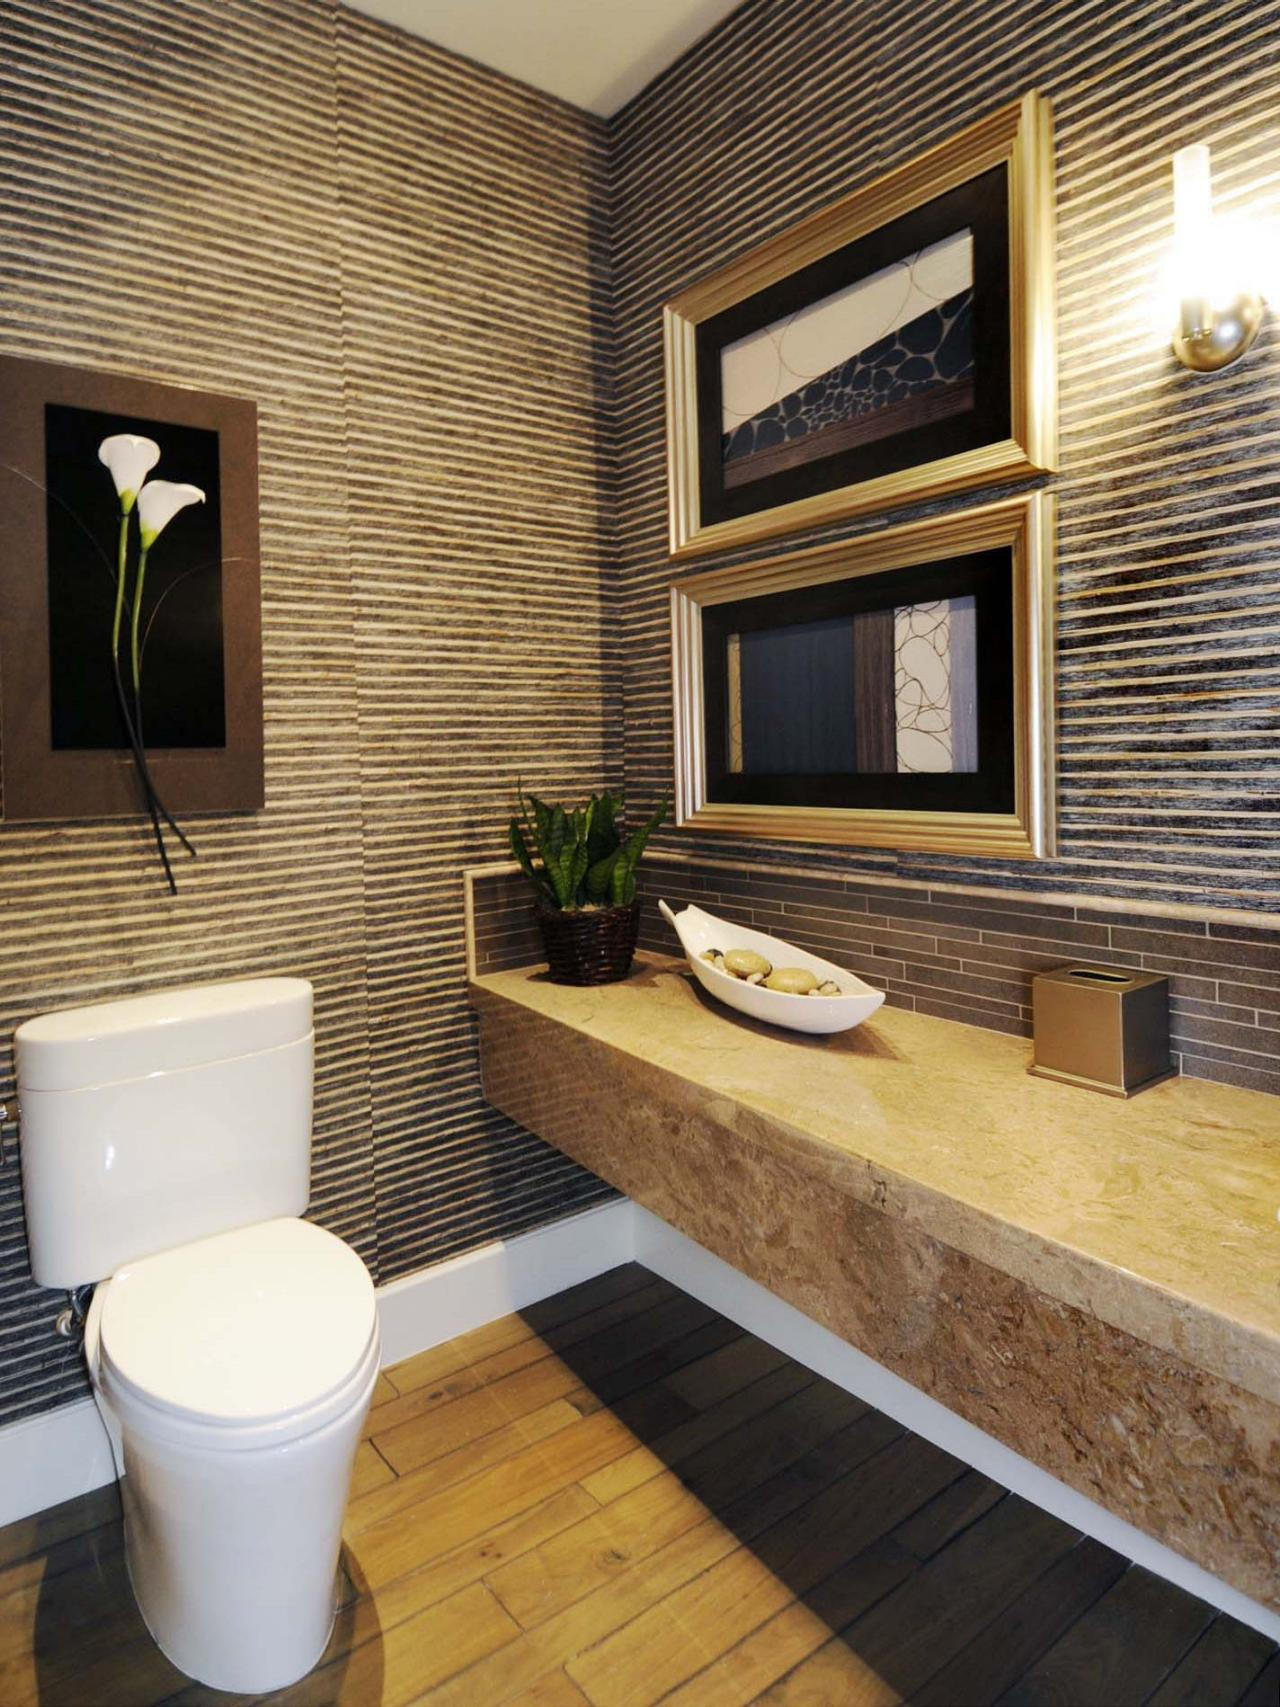 Half bathroom or powder room hgtv for Bamboo bathroom design